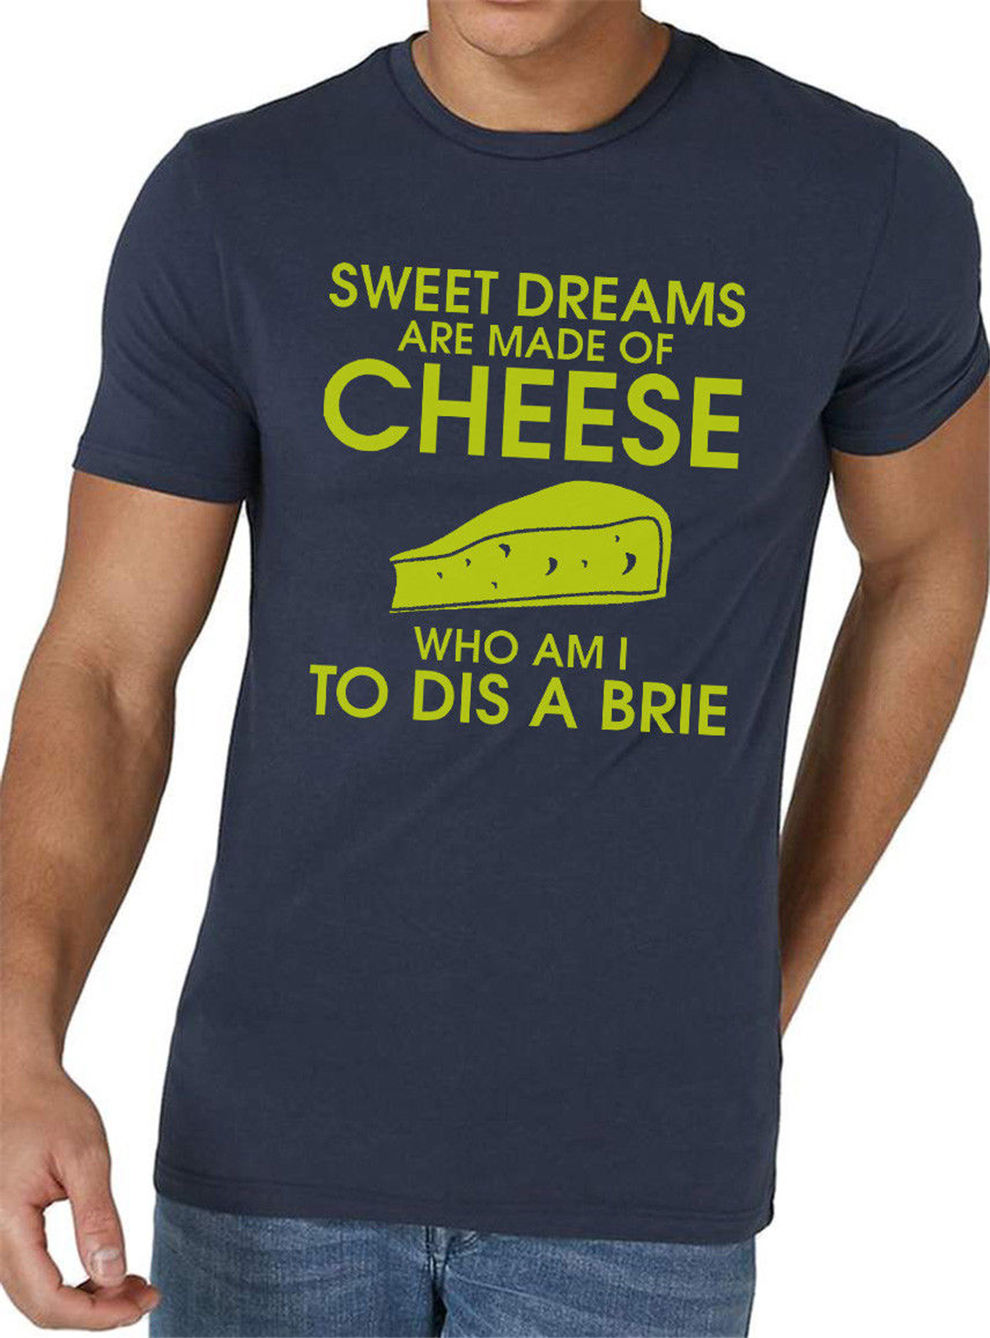 Sweet Dreams Are Made Of Cheese T Shirt Funny Pun Joke Brie Slogan Free Style Tee Shirt image